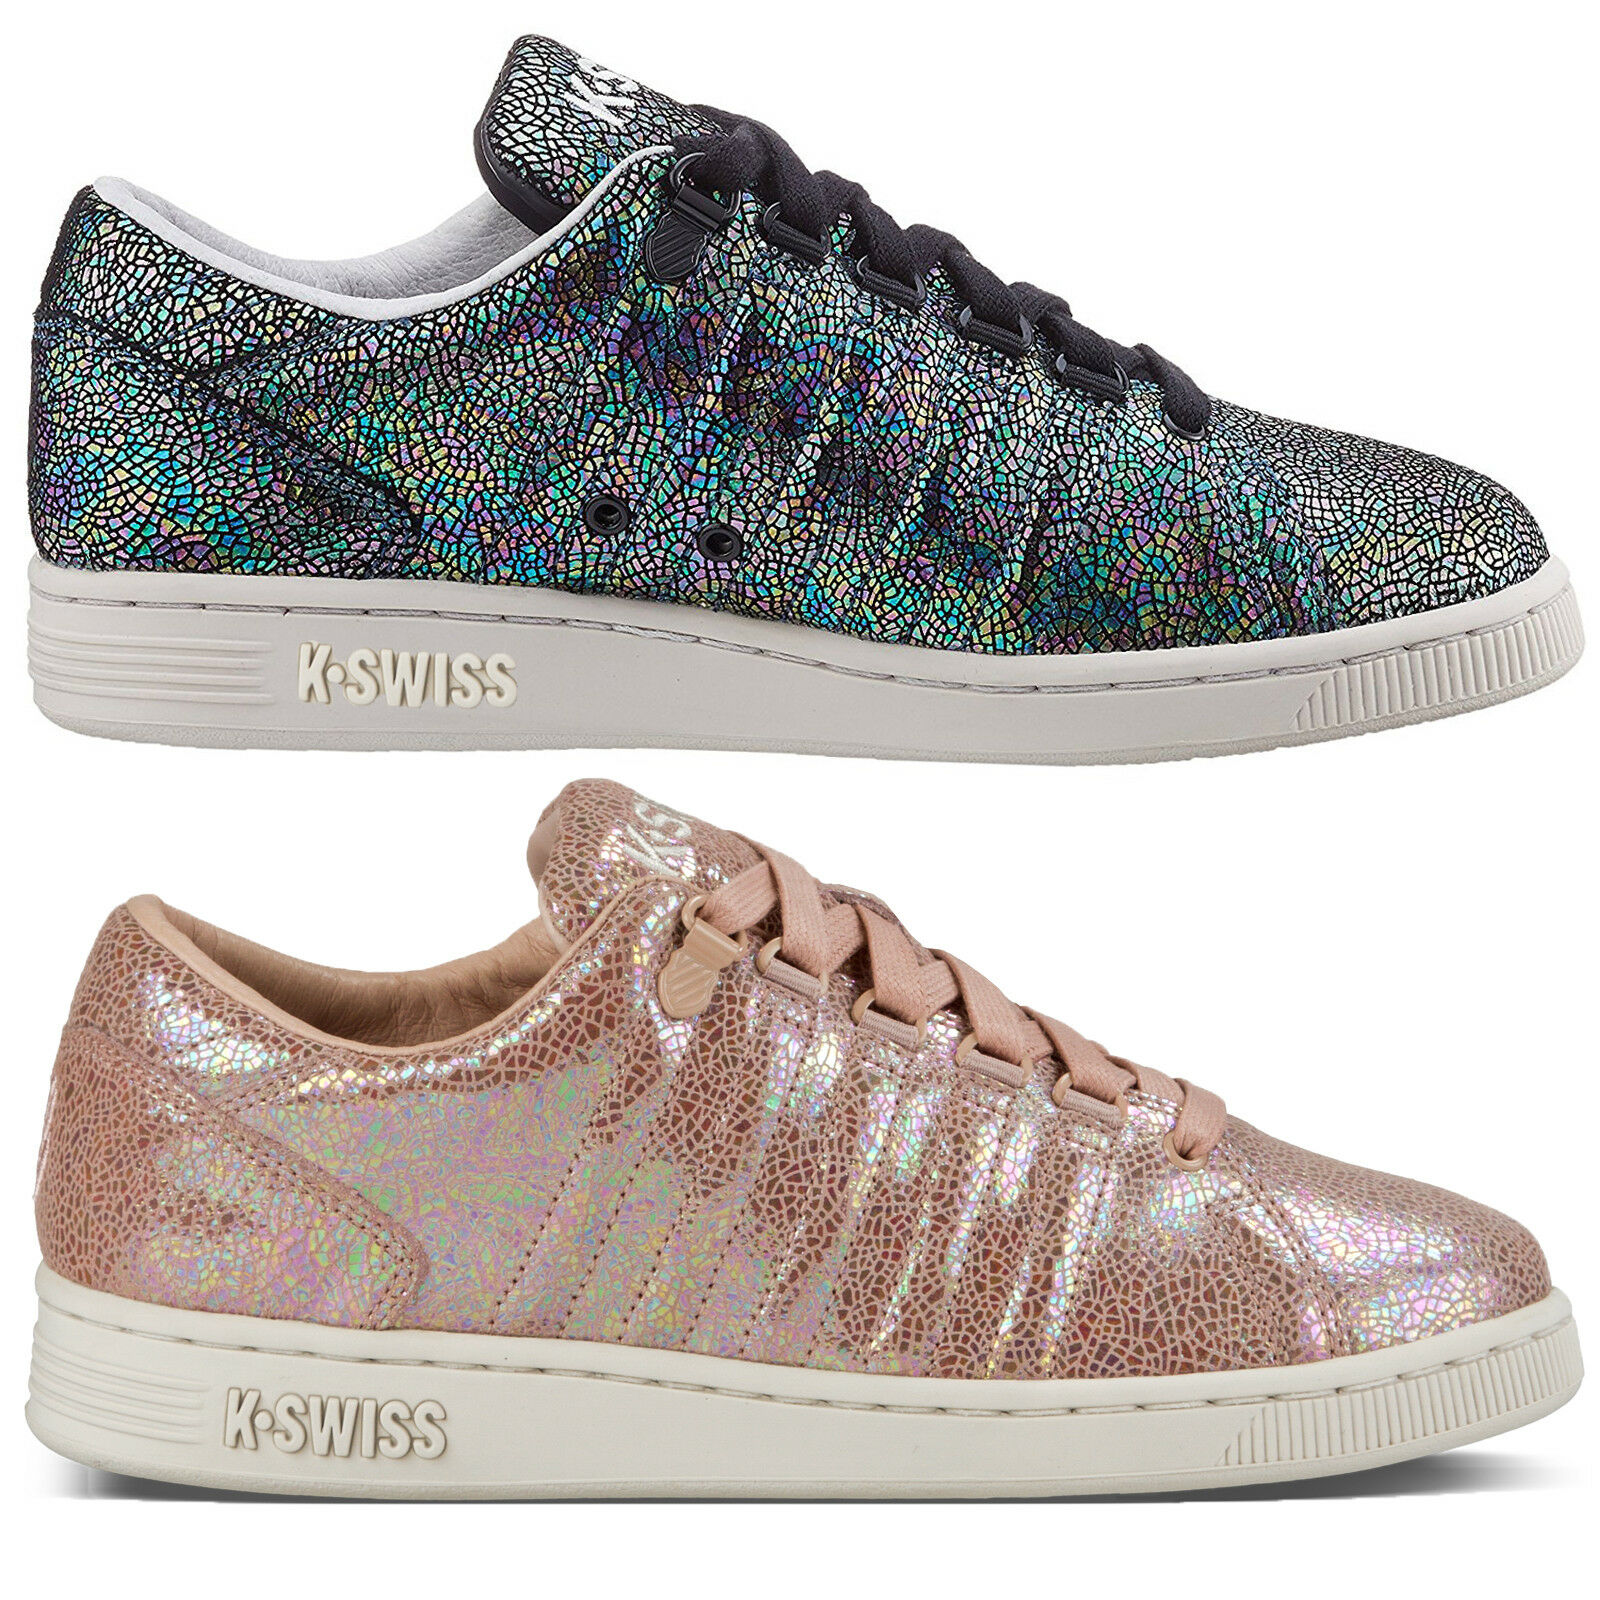 K-Swiss Designer femmes  Iconic Lozan III TT IRDSCNT Trainers Shiny Lace Up  Chaussures